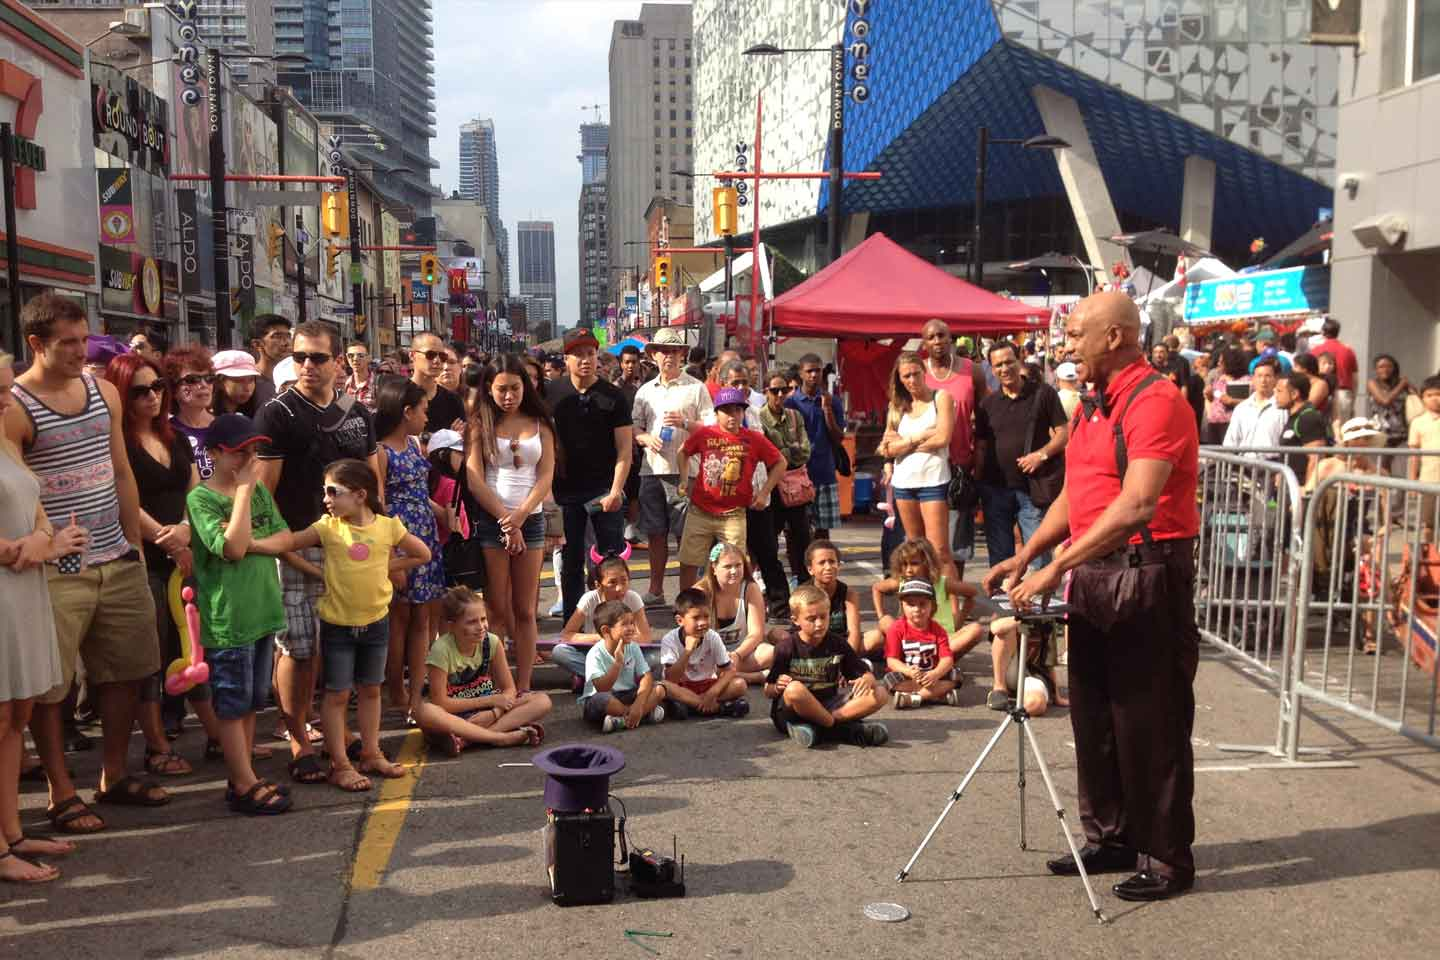 Image of Andrew Eland performing at Buskerfest in Toronto, Canada